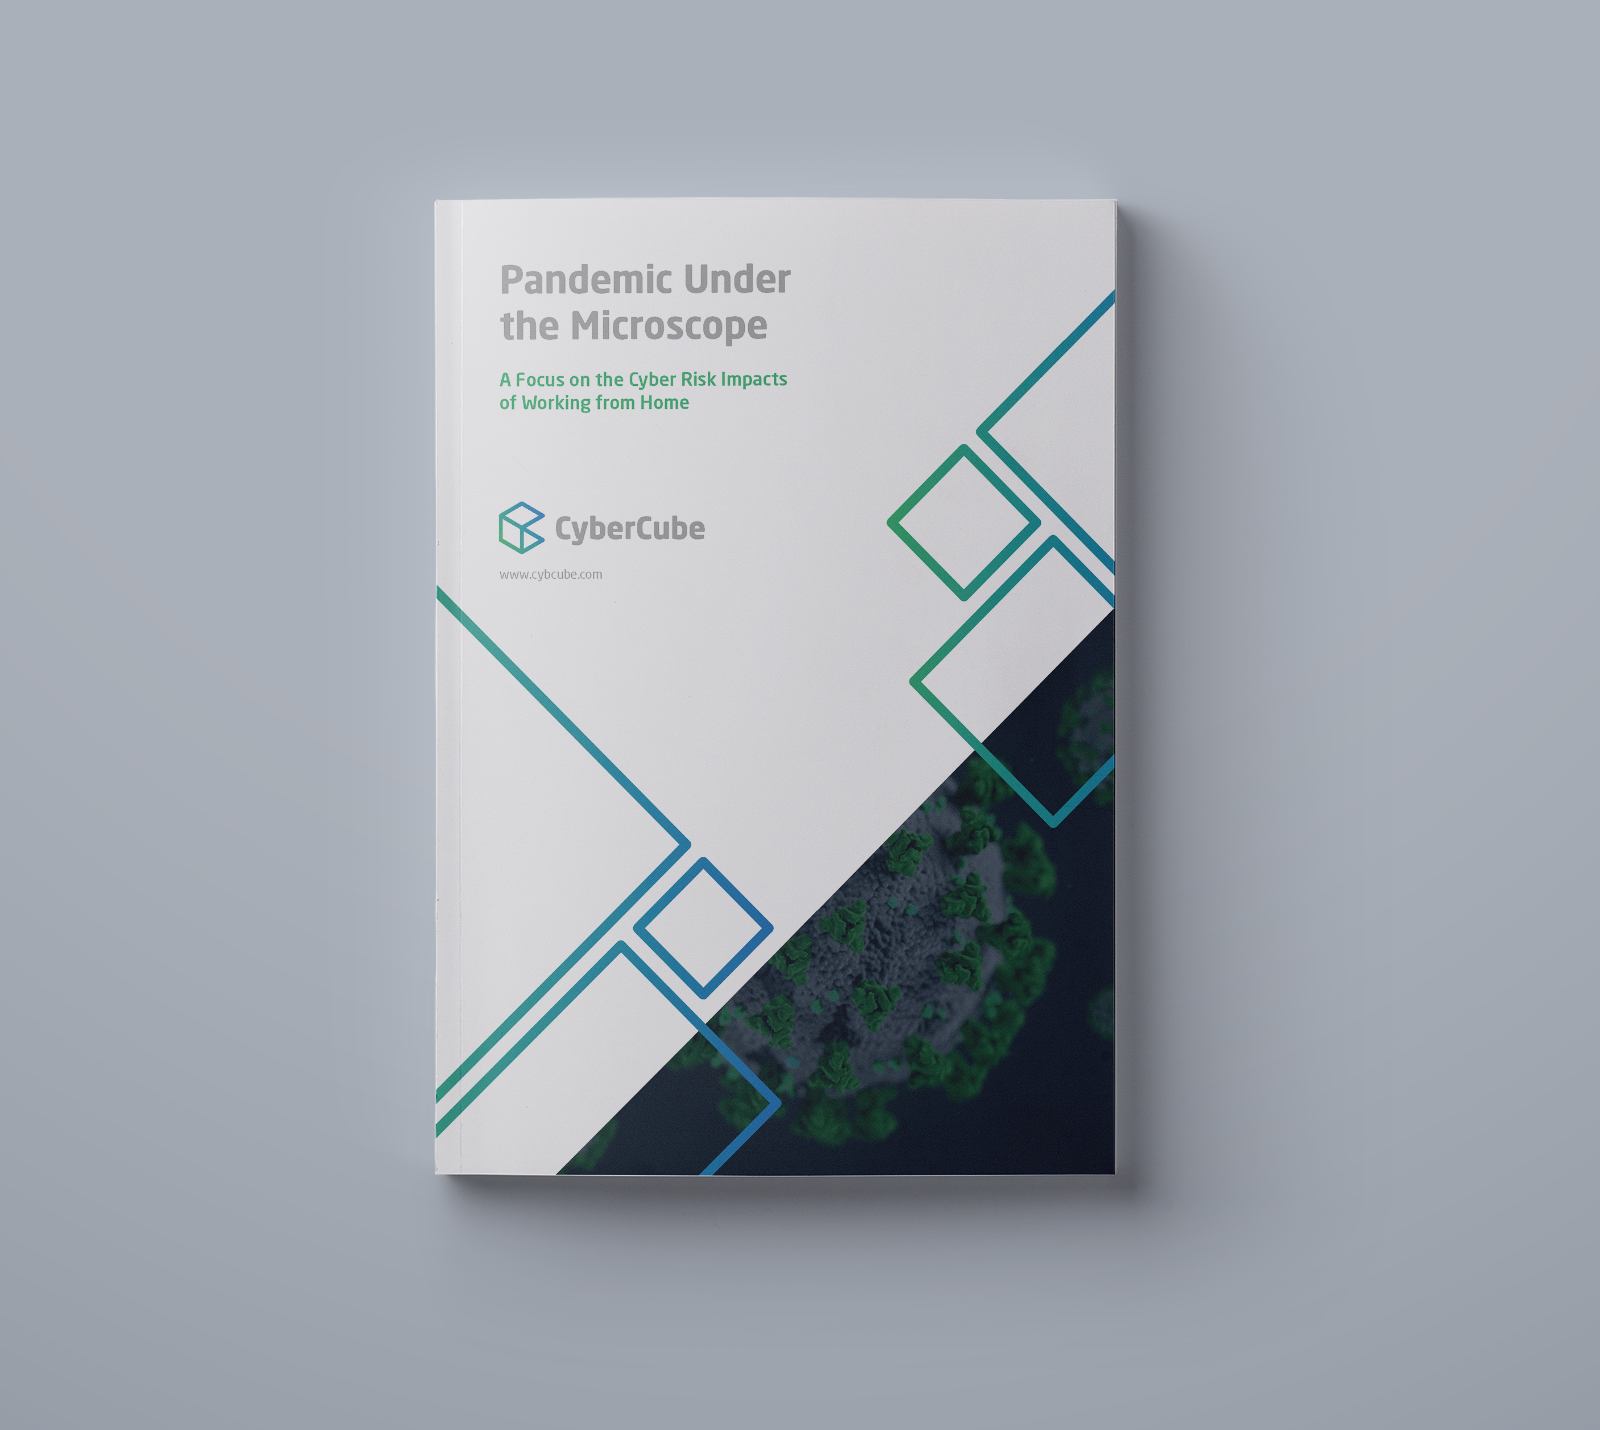 Pandemic-Under-the-Microscope-cover-landing-pages